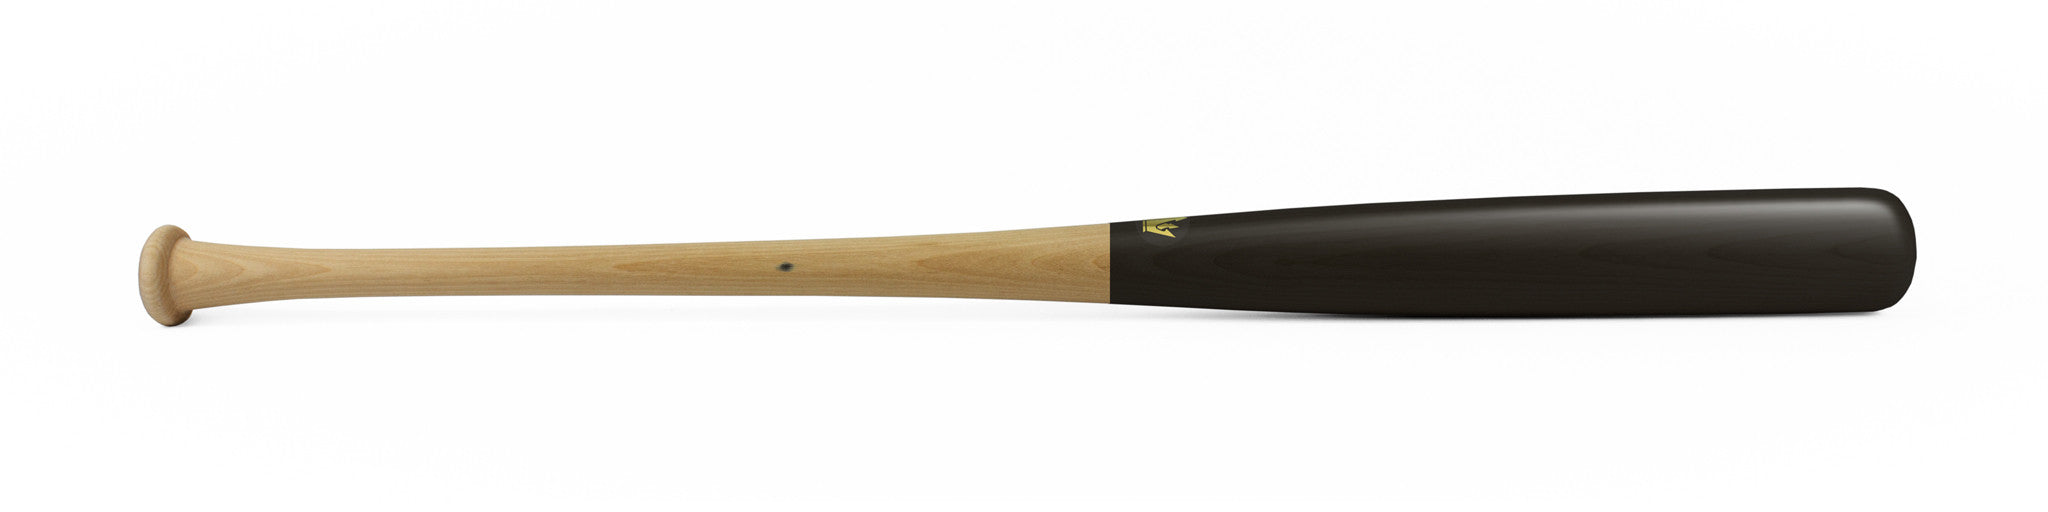 Wood bat - Birch model 141-P Black Standard - 12